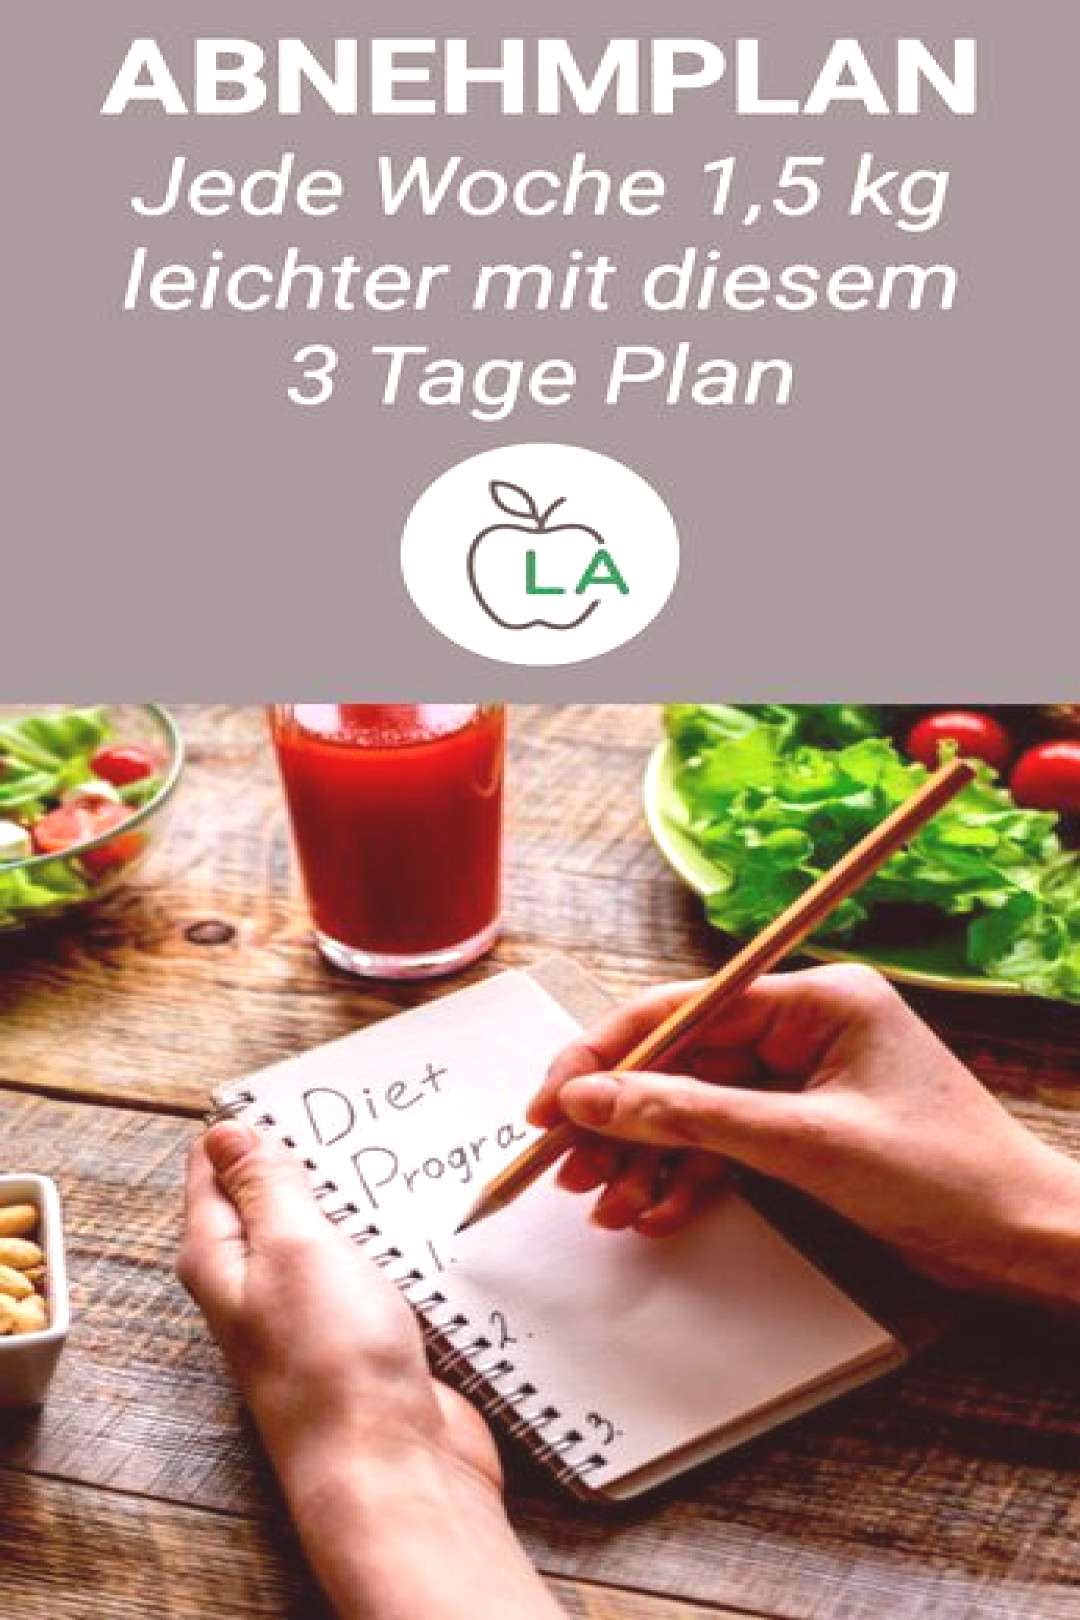 Free diet plan to lose weight - effective diet plan,If you want to lose weight quickly on you... Fr